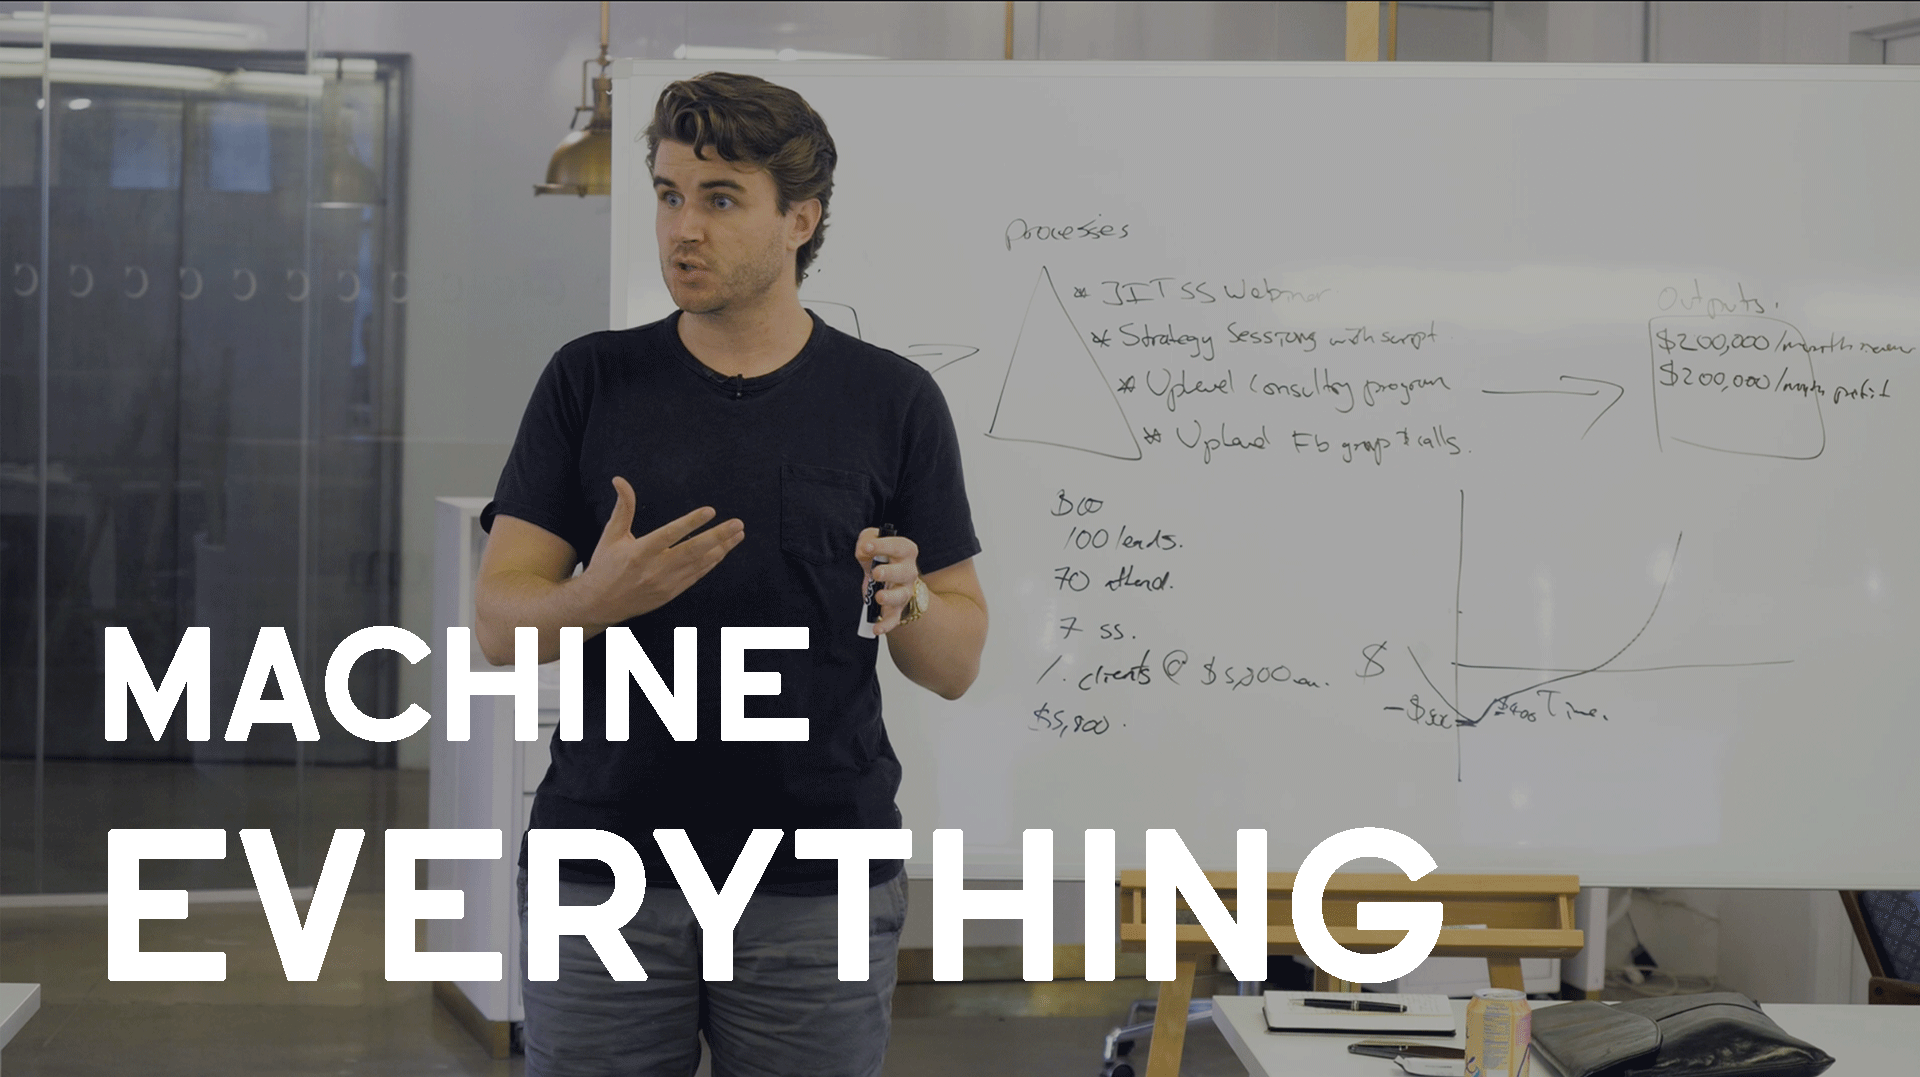 Machine Everything: Remove The Need For Humans To Think